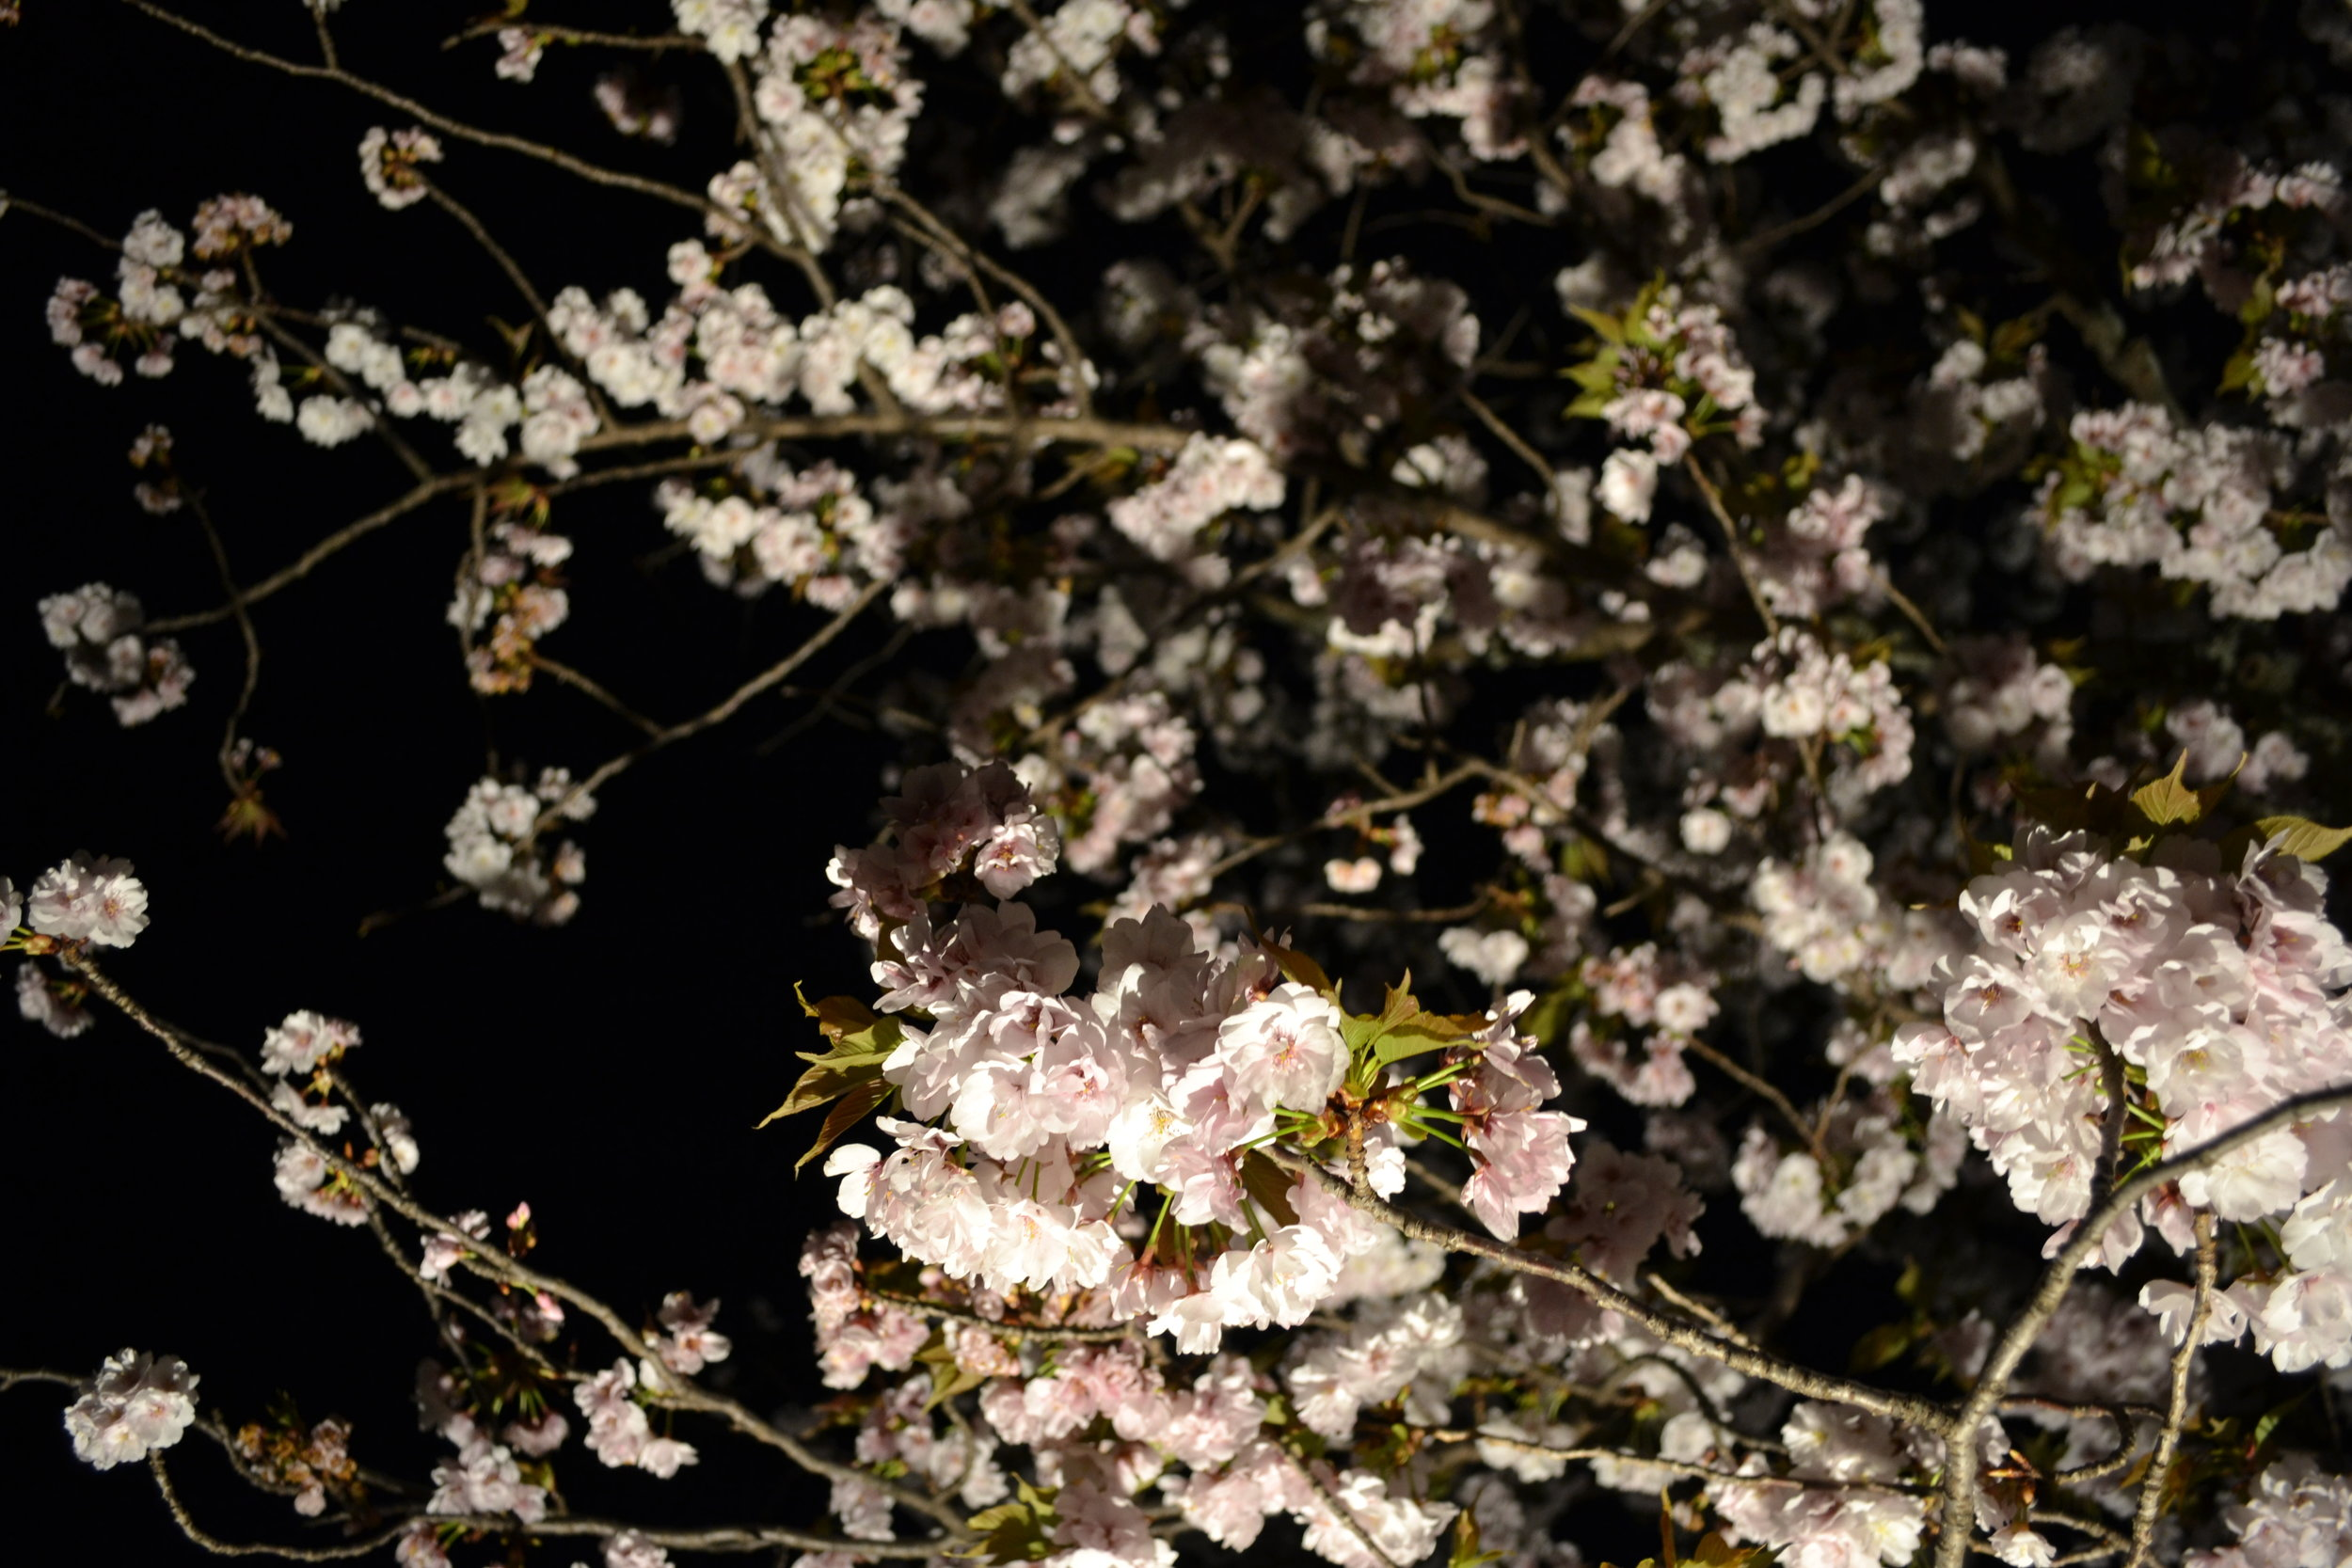 One final look of the cherry blossoms up close. I know that this post is about castles, but if the people who used to live and work here also got to see all of these flowers, then in some way I am walking through where they used to walk through too.